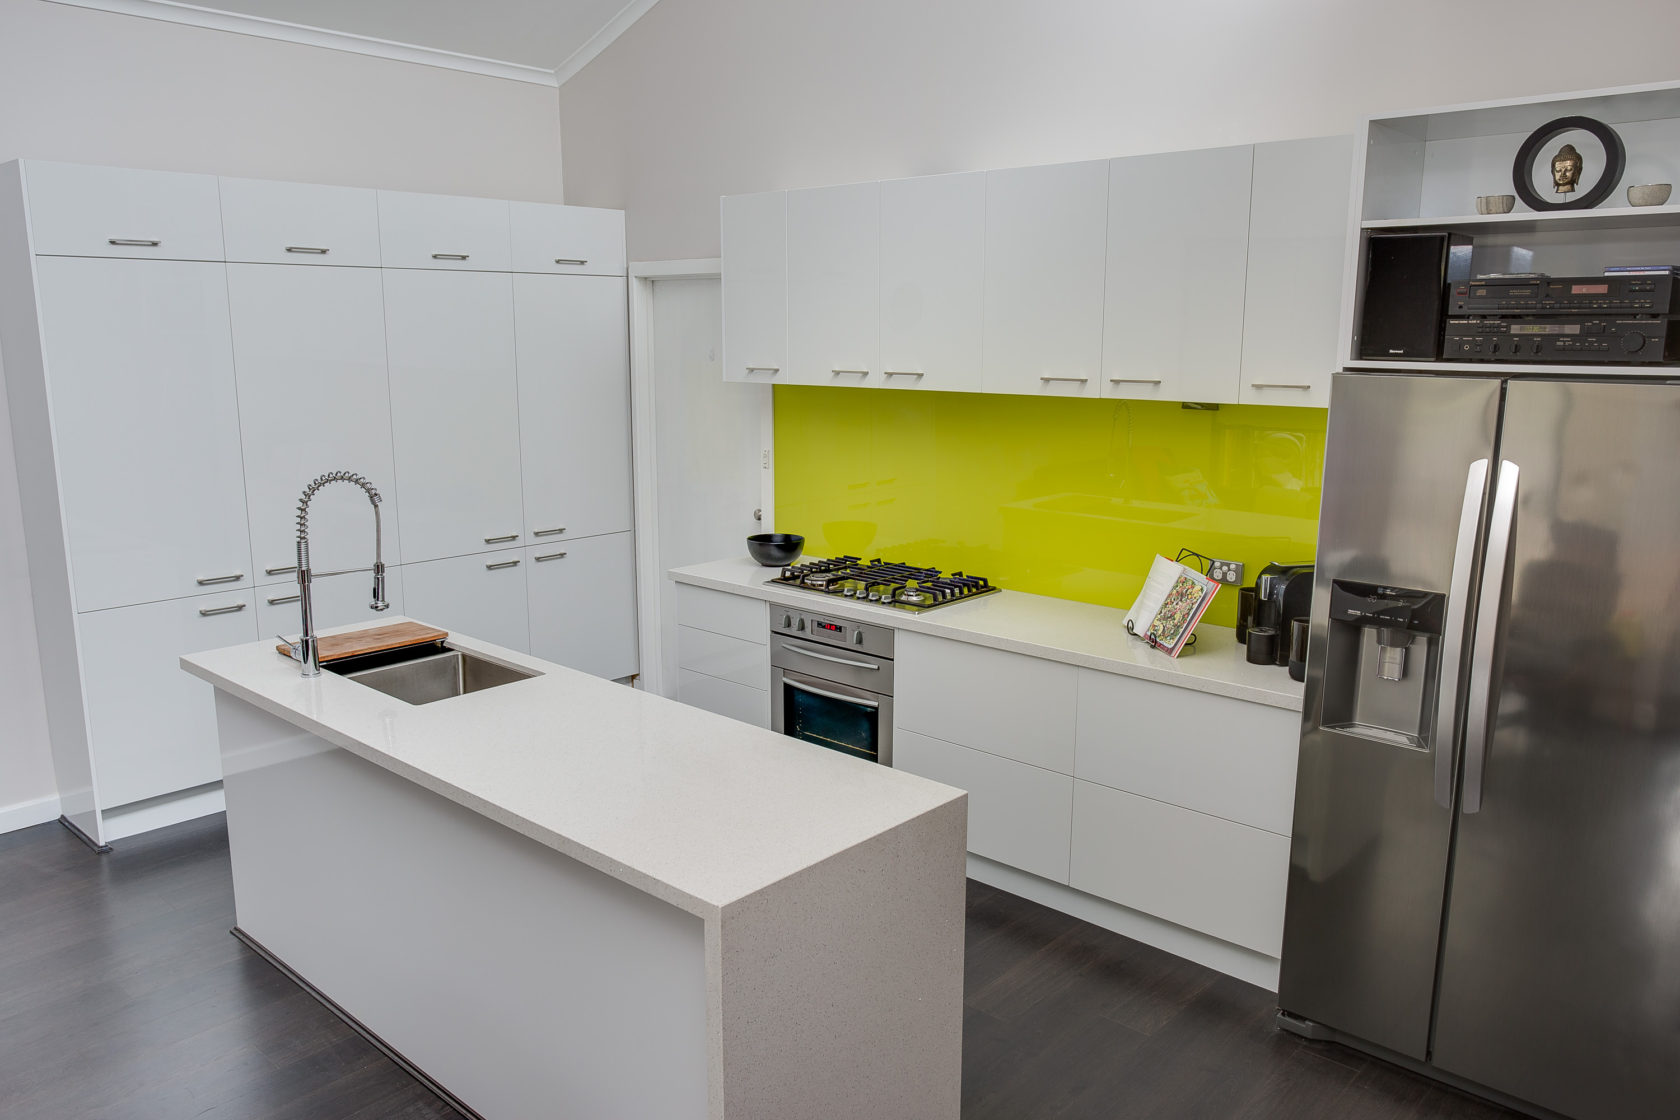 Kitchens For Nunawading From Zesta Kitchens Kitchen Design Ideas For Melbourne Zesta Kitchens